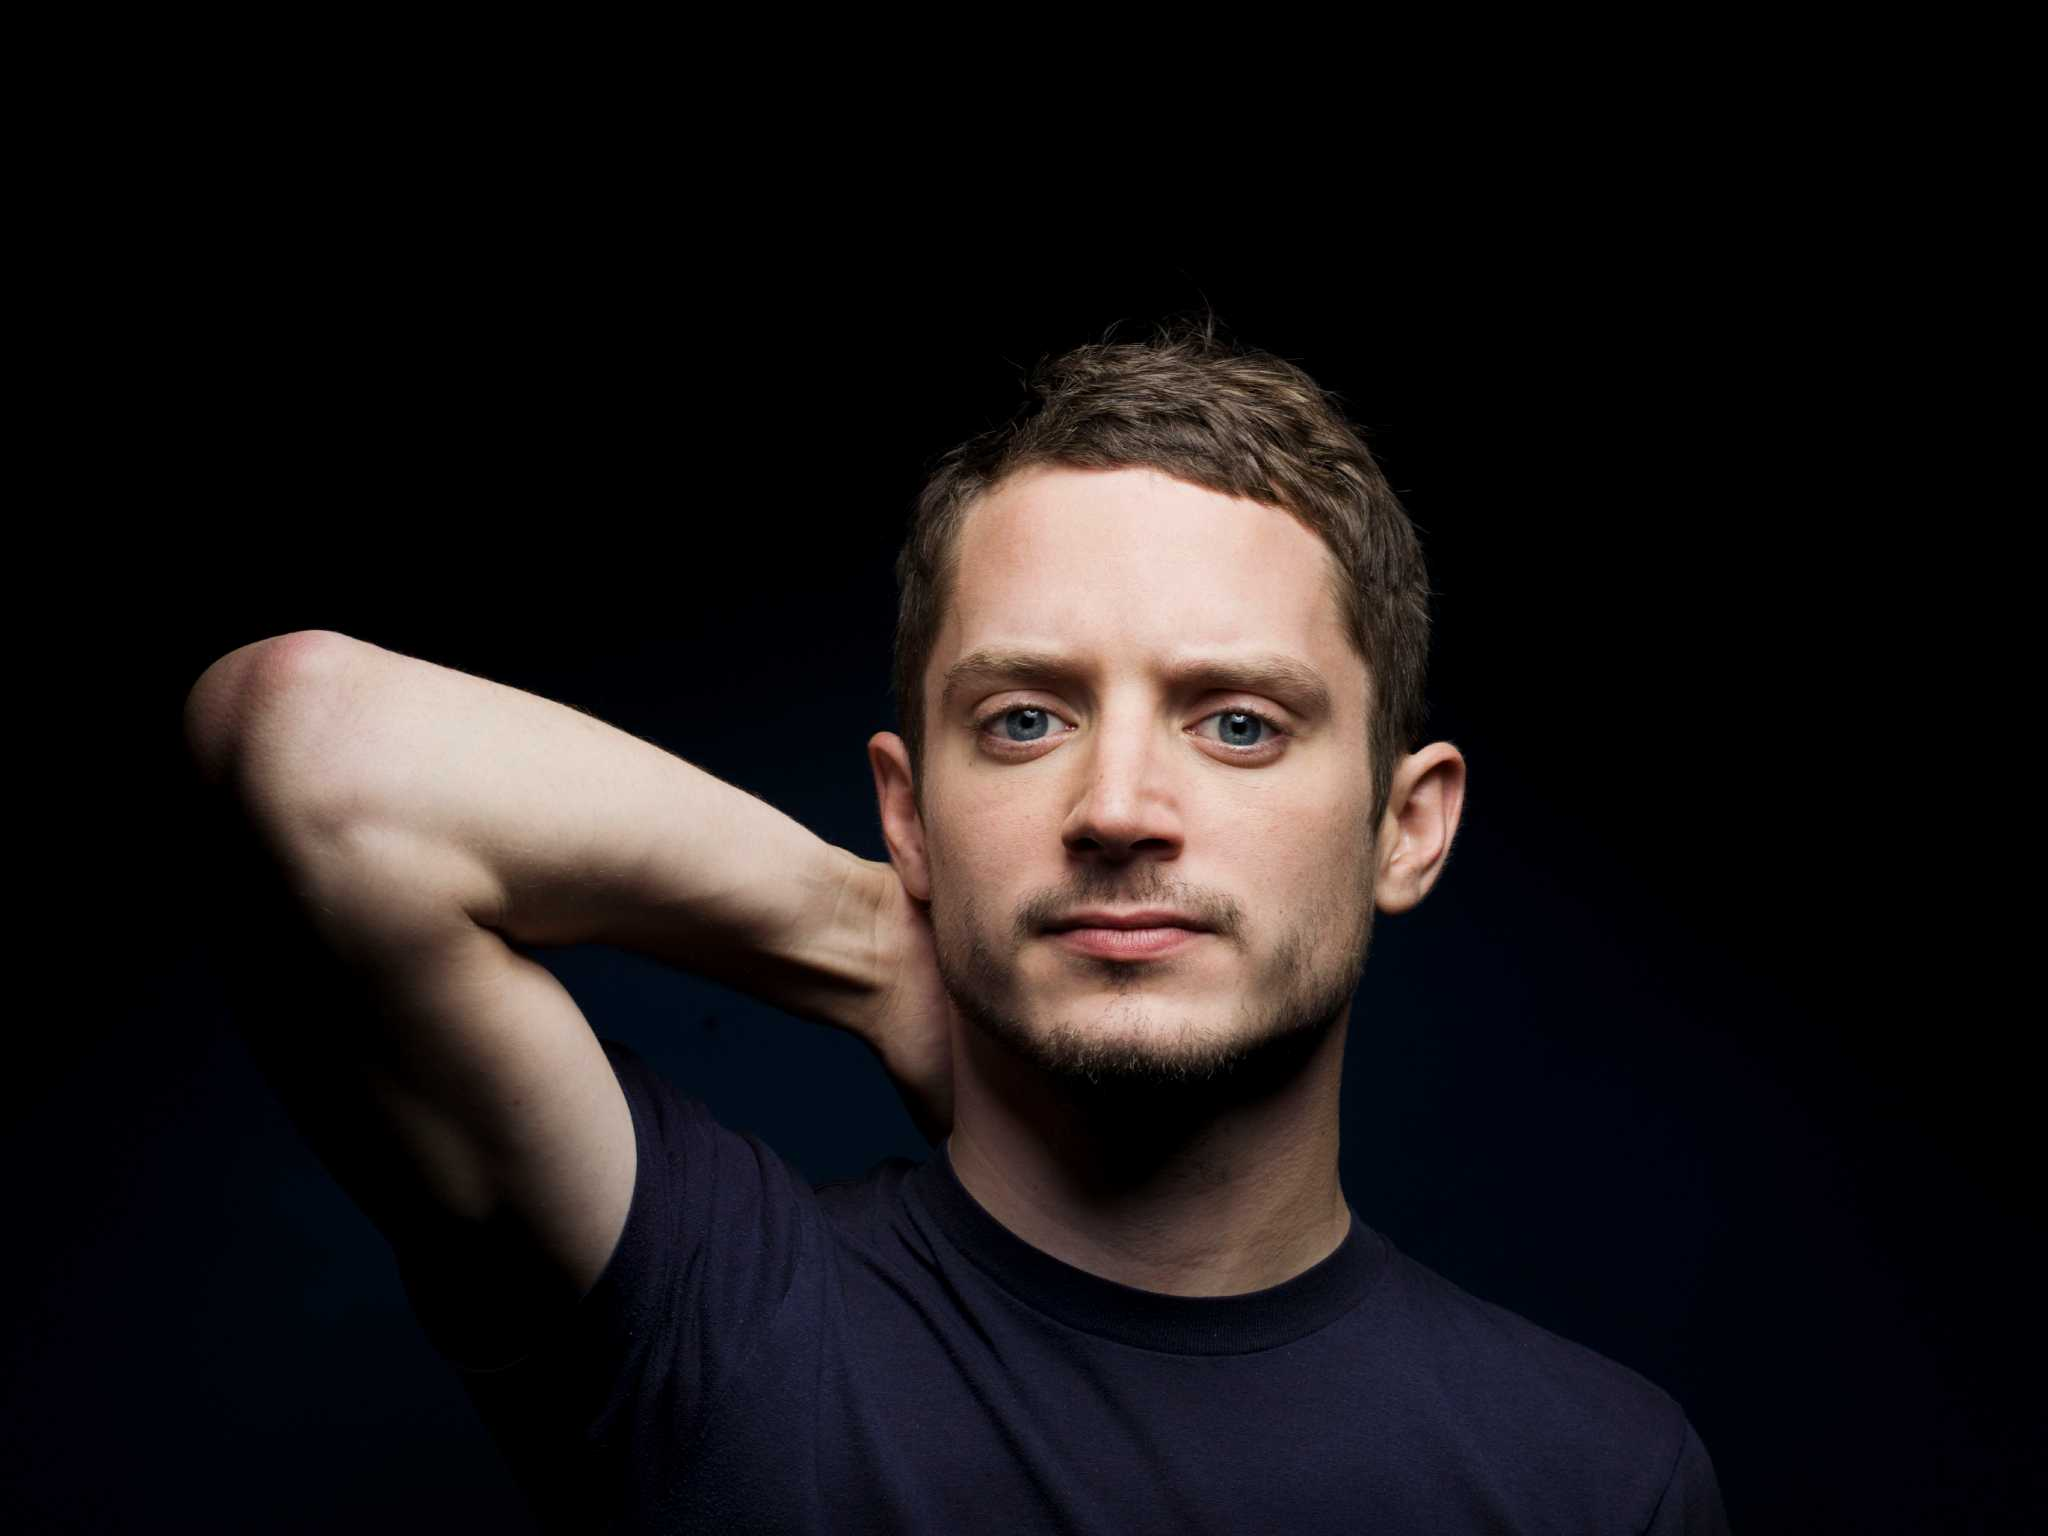 Horror films equal happiness for actor Elijah Wood ...